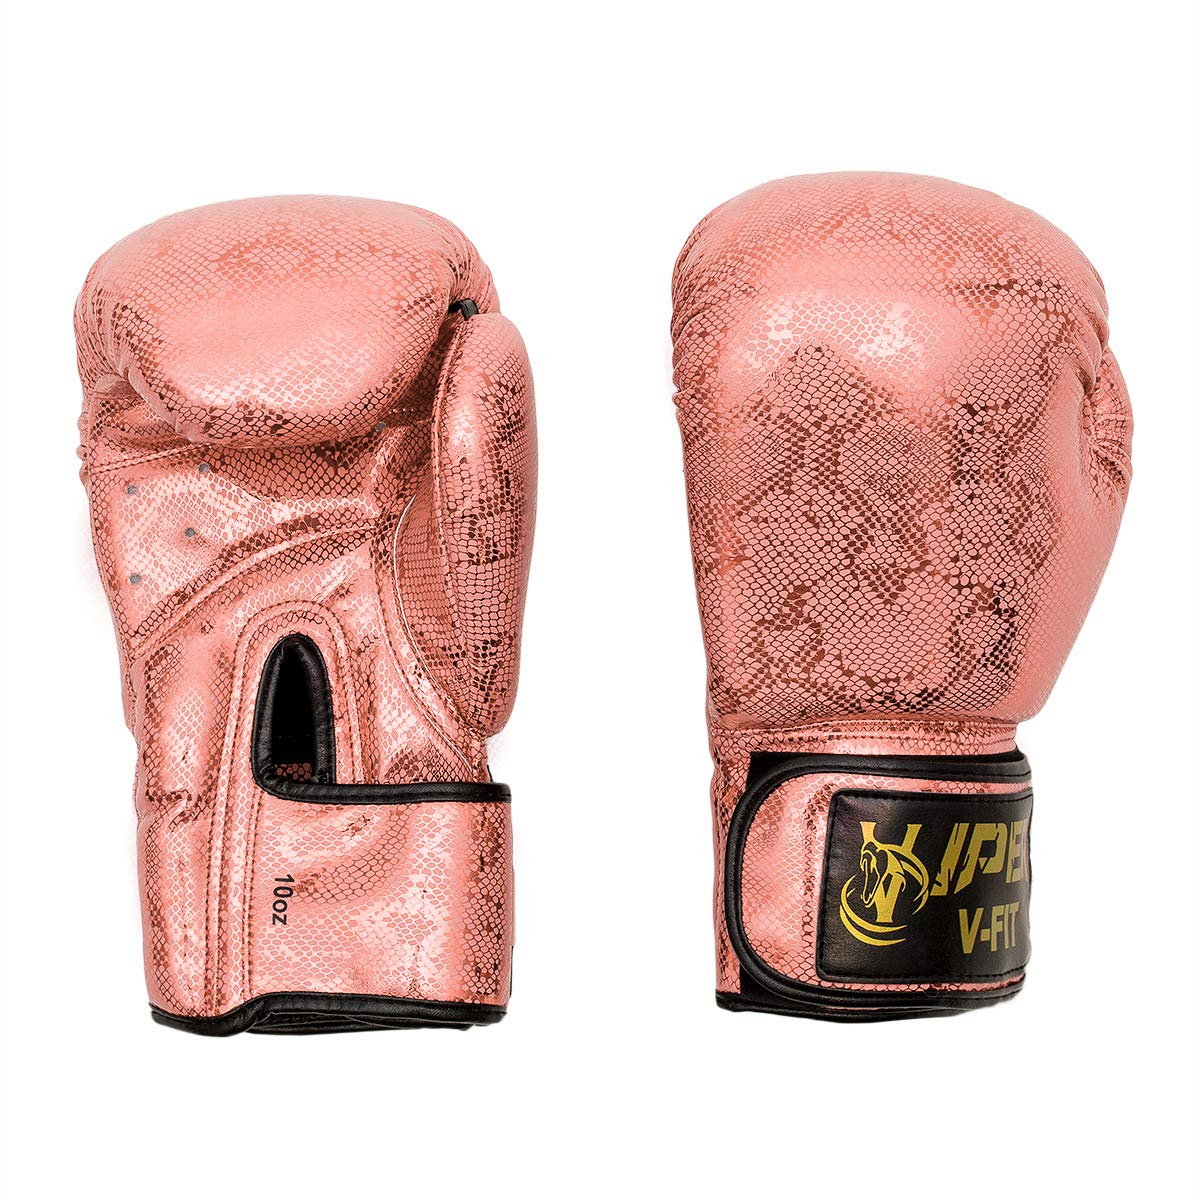 Kids Boxing Gloves 6oz Punch Bag Muay Thai Martial Arts Pink Rex Leather Punch